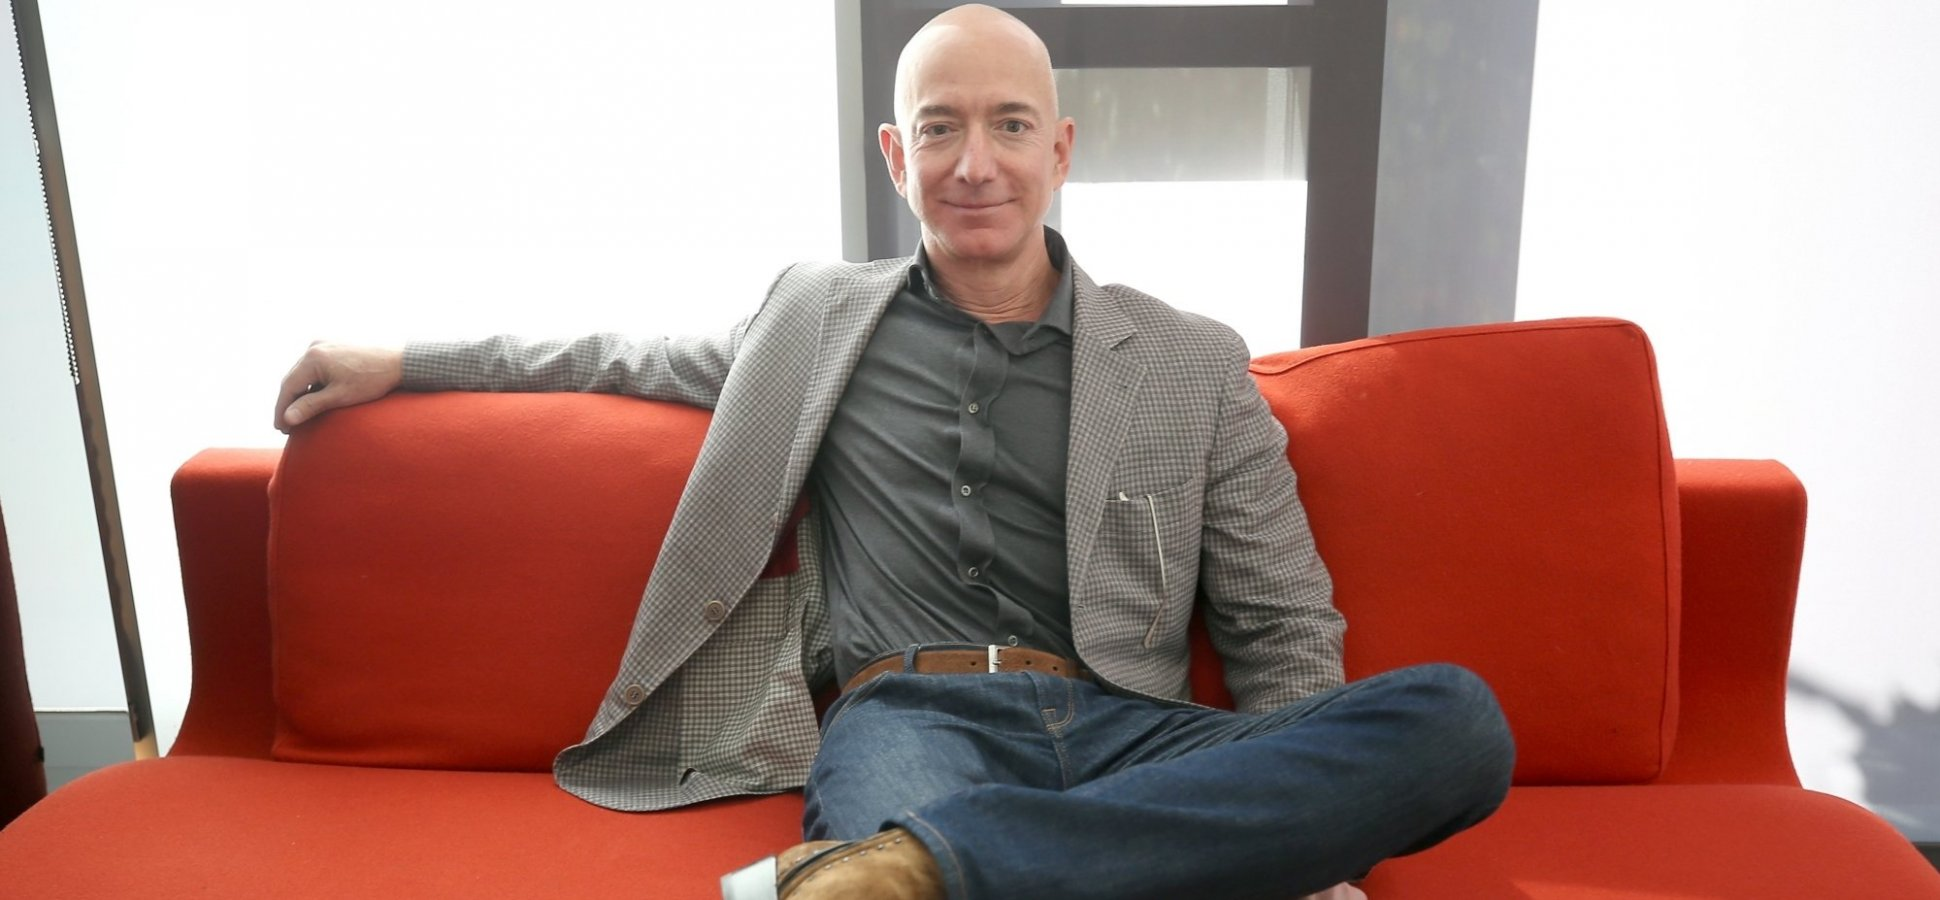 Jeff Bezos Says Asking These 12 Questions Now Will Make You Proud of the Life You've Built Later